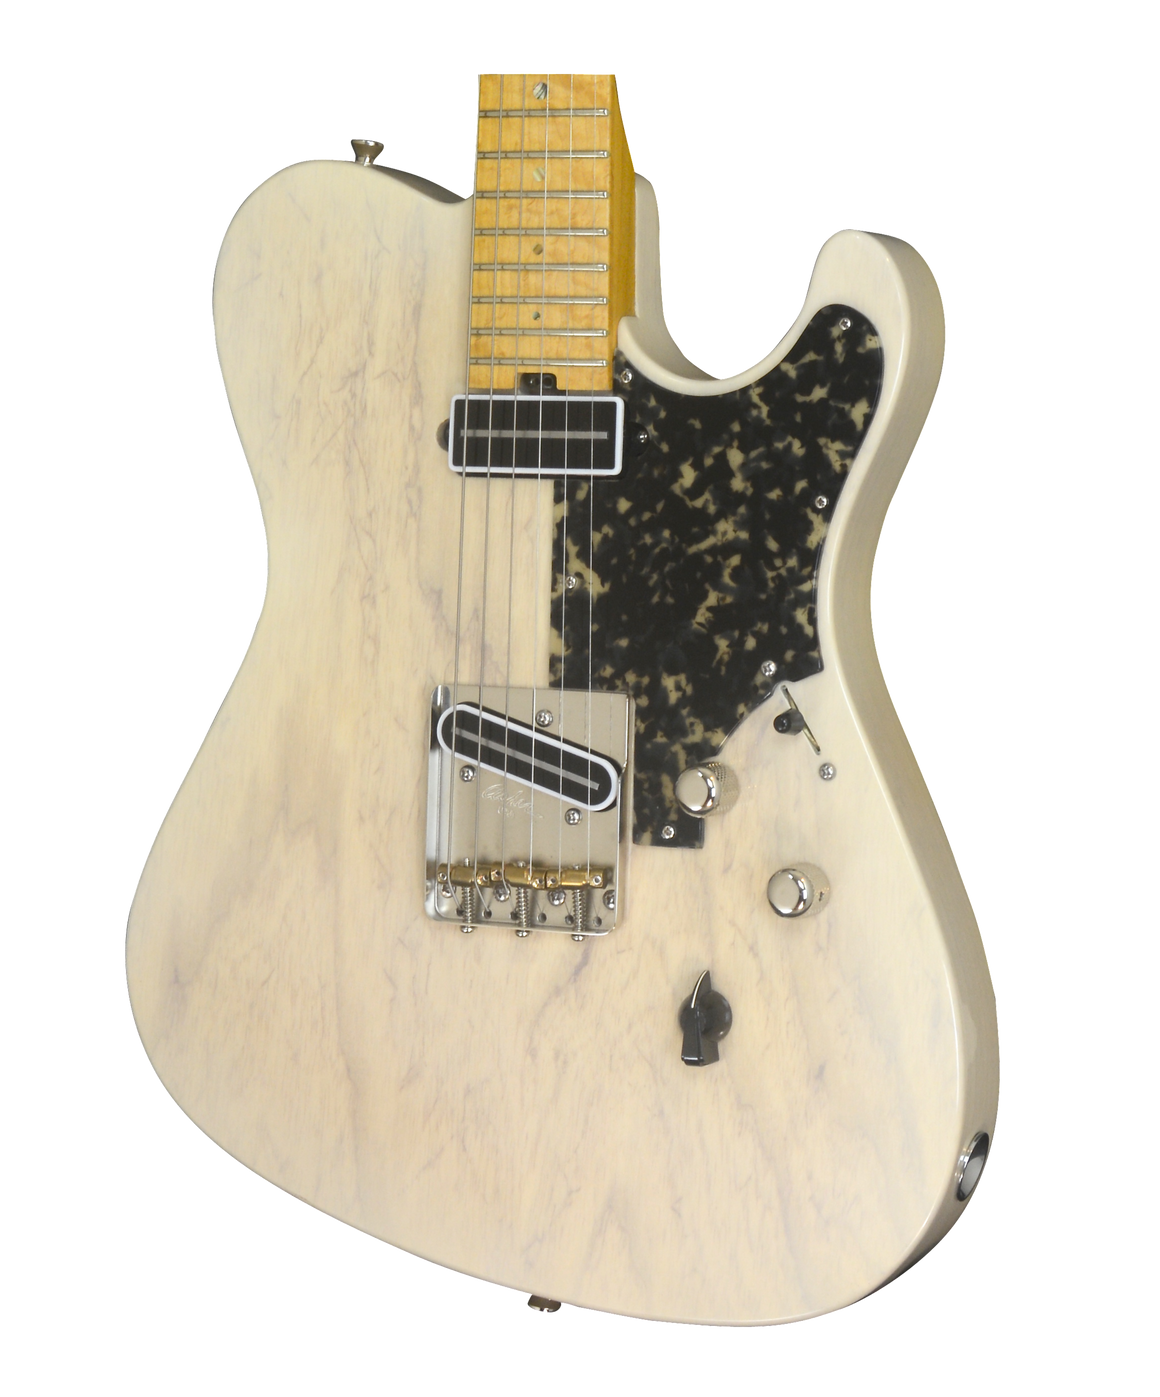 SOLD 2017 Asher T Deluxe Trans Ivory with Black Tortoise Pick Guard #1014